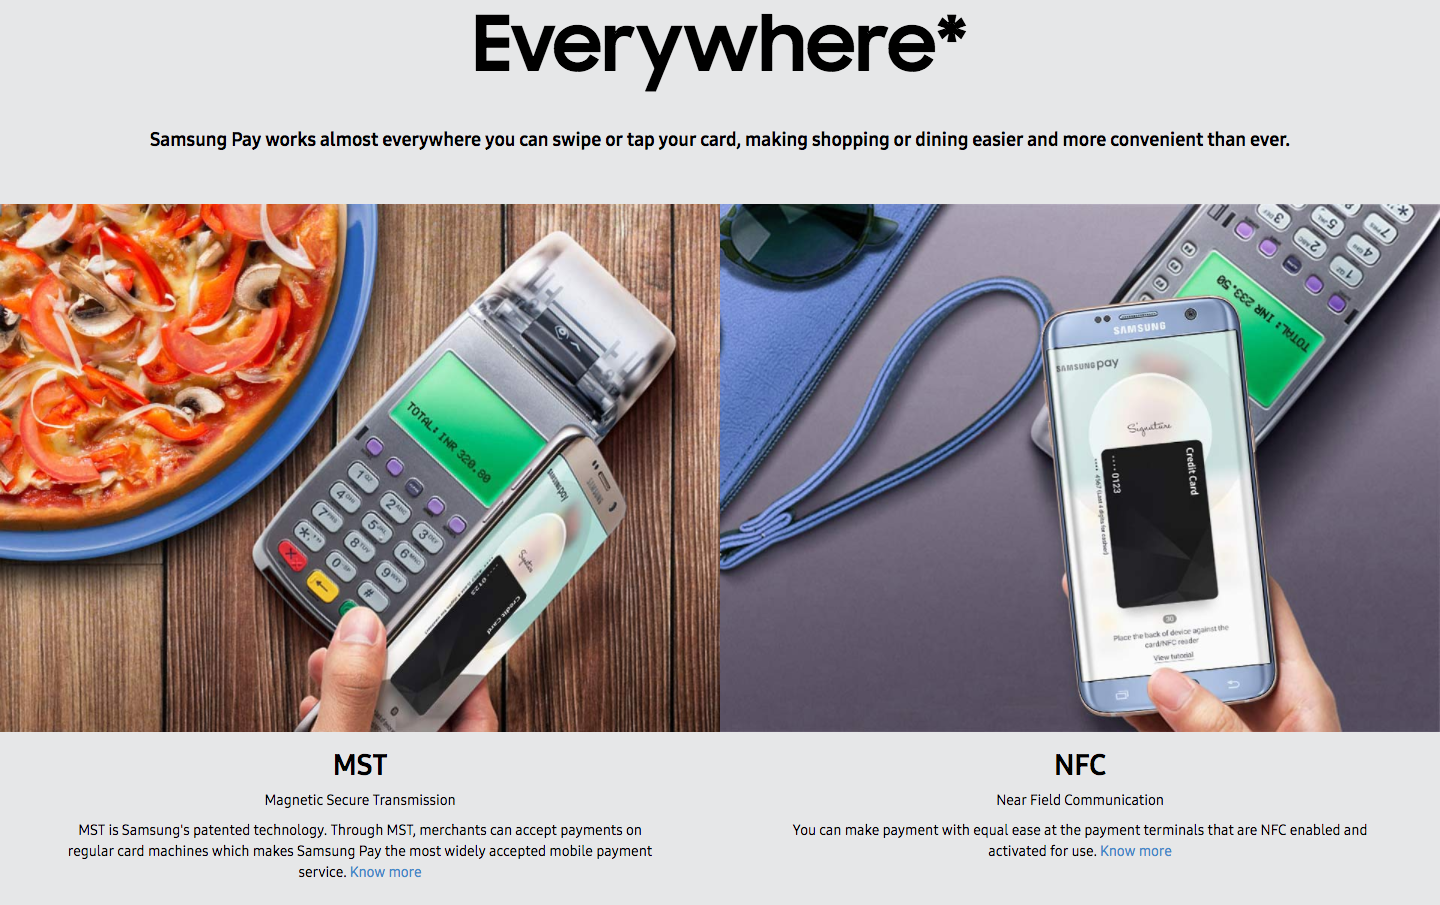 How Samsung Pay works in India, a country with 2FA?